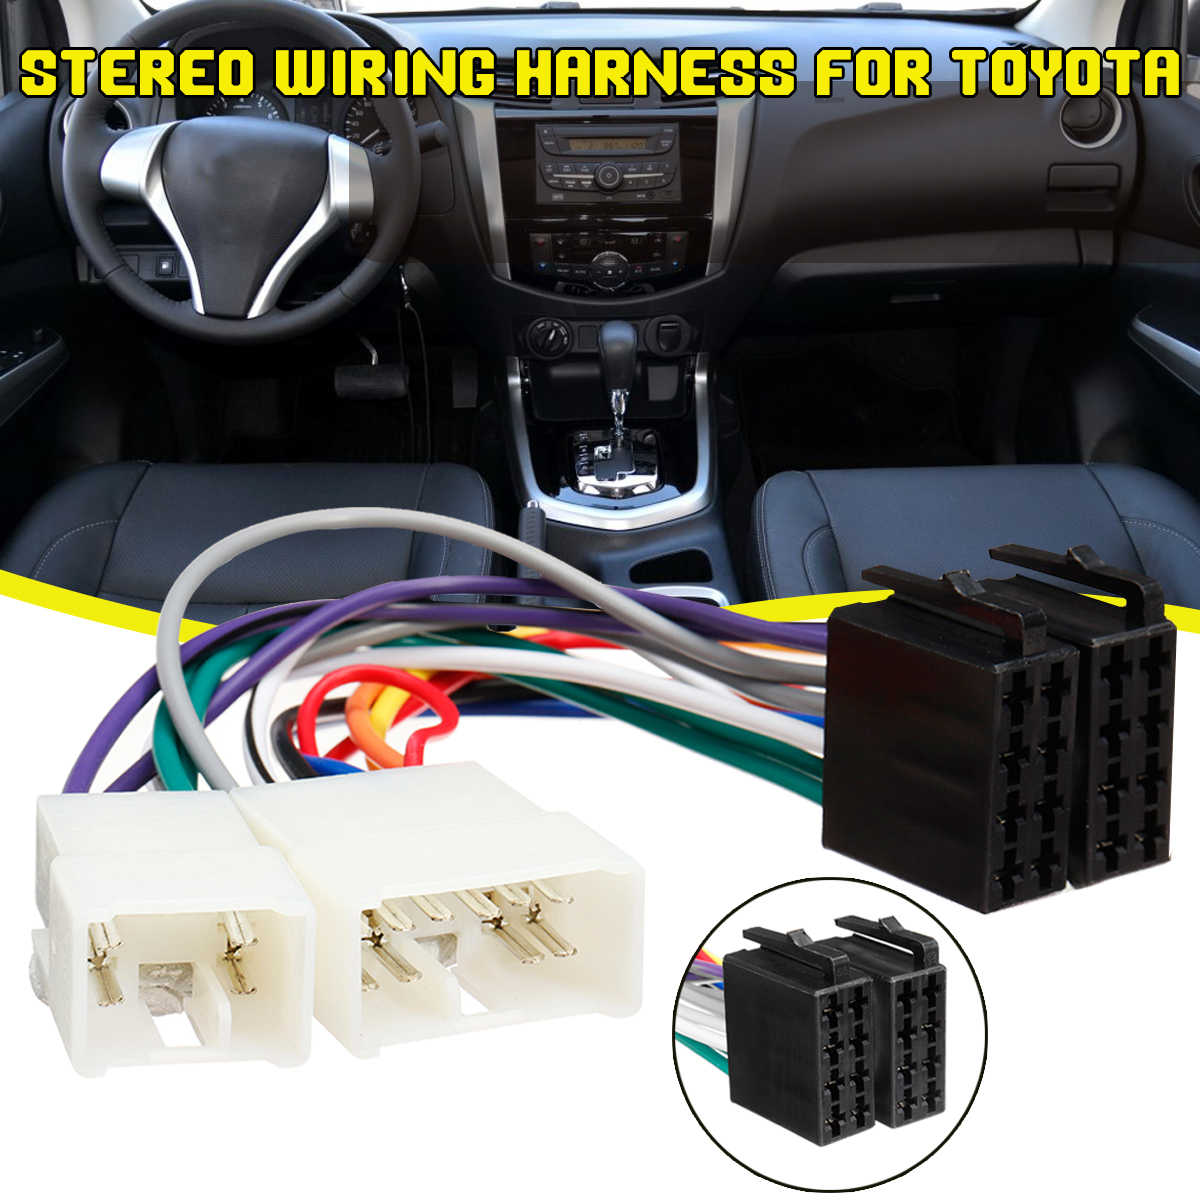 Car ISO Radio Wire Cable Harness Connector Plug 4/10Pins For Toyota Aurion Avalon Avensis Yaris  Camry Celica Corolla RAV4